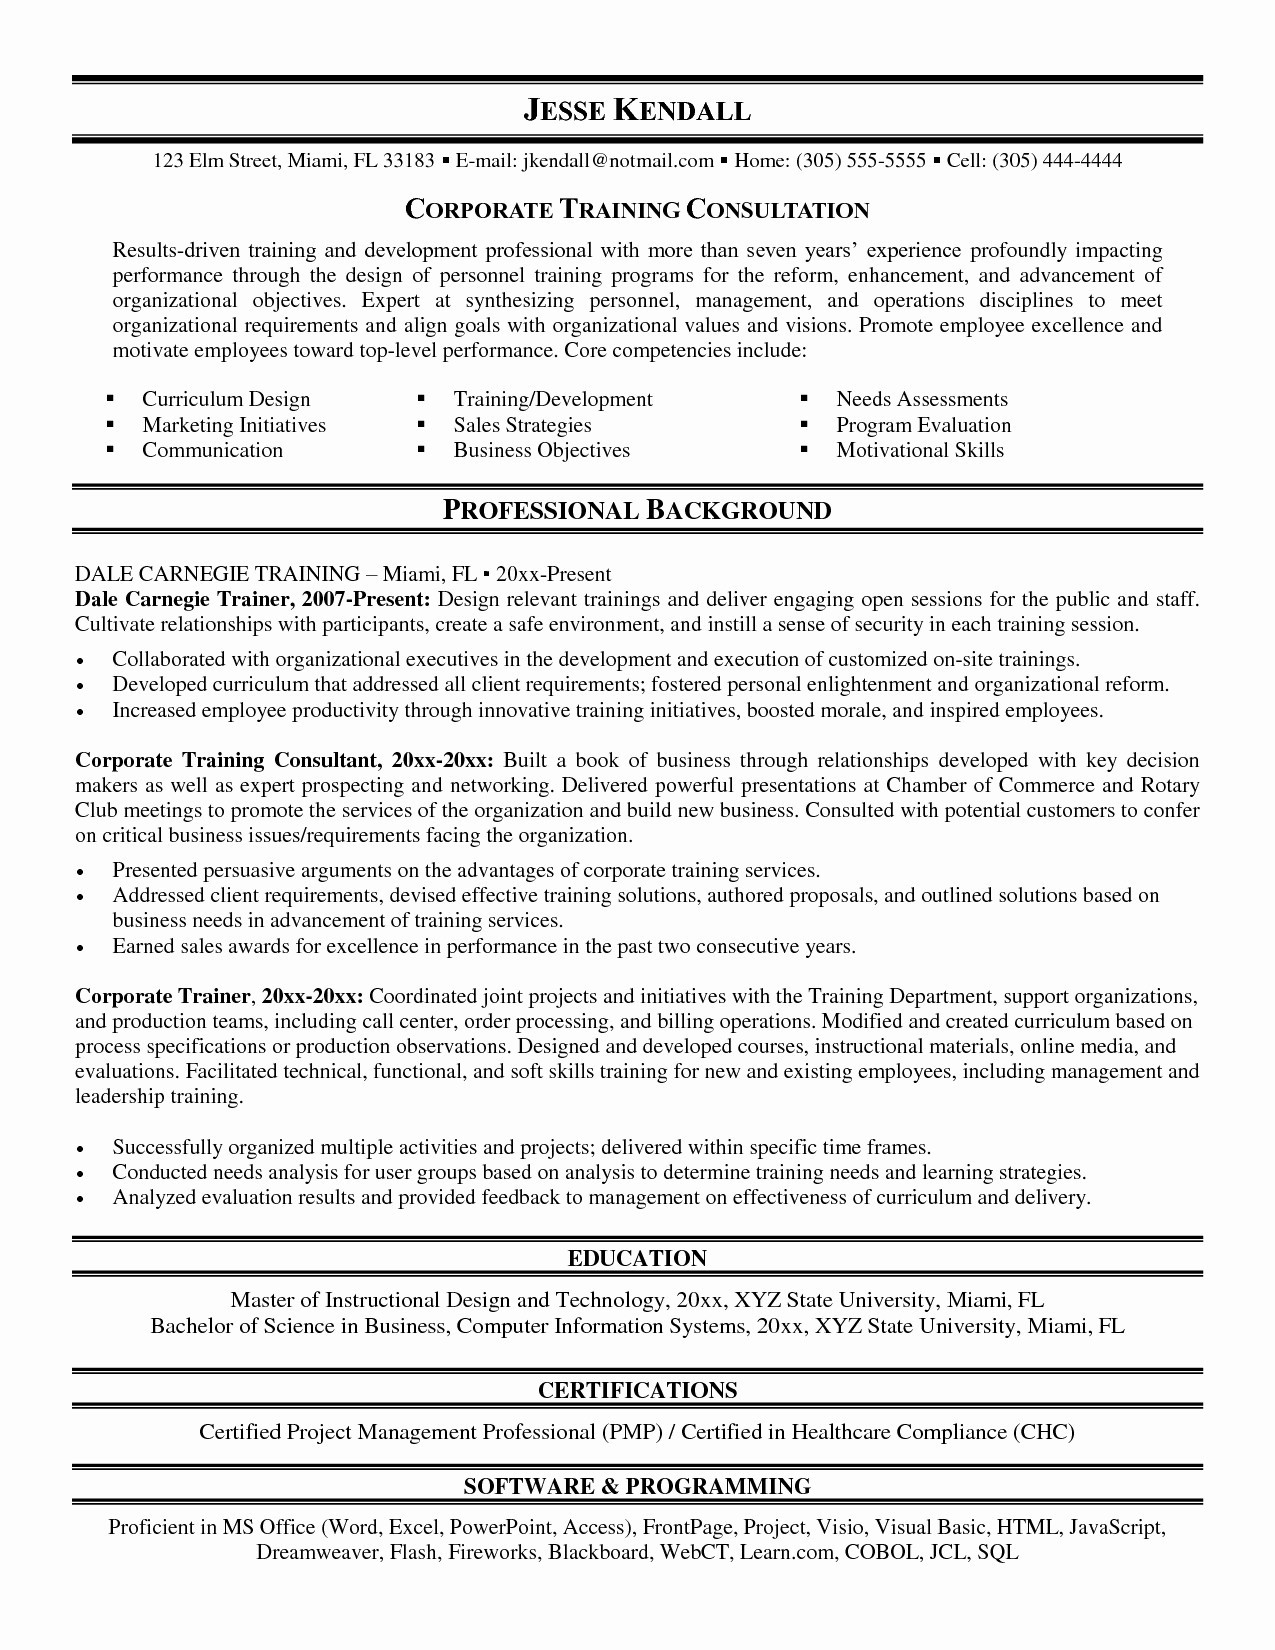 Going Paperless Letter to Customers Template - Customer Service Sample Resume New Unique Examples Resumes Ecologist